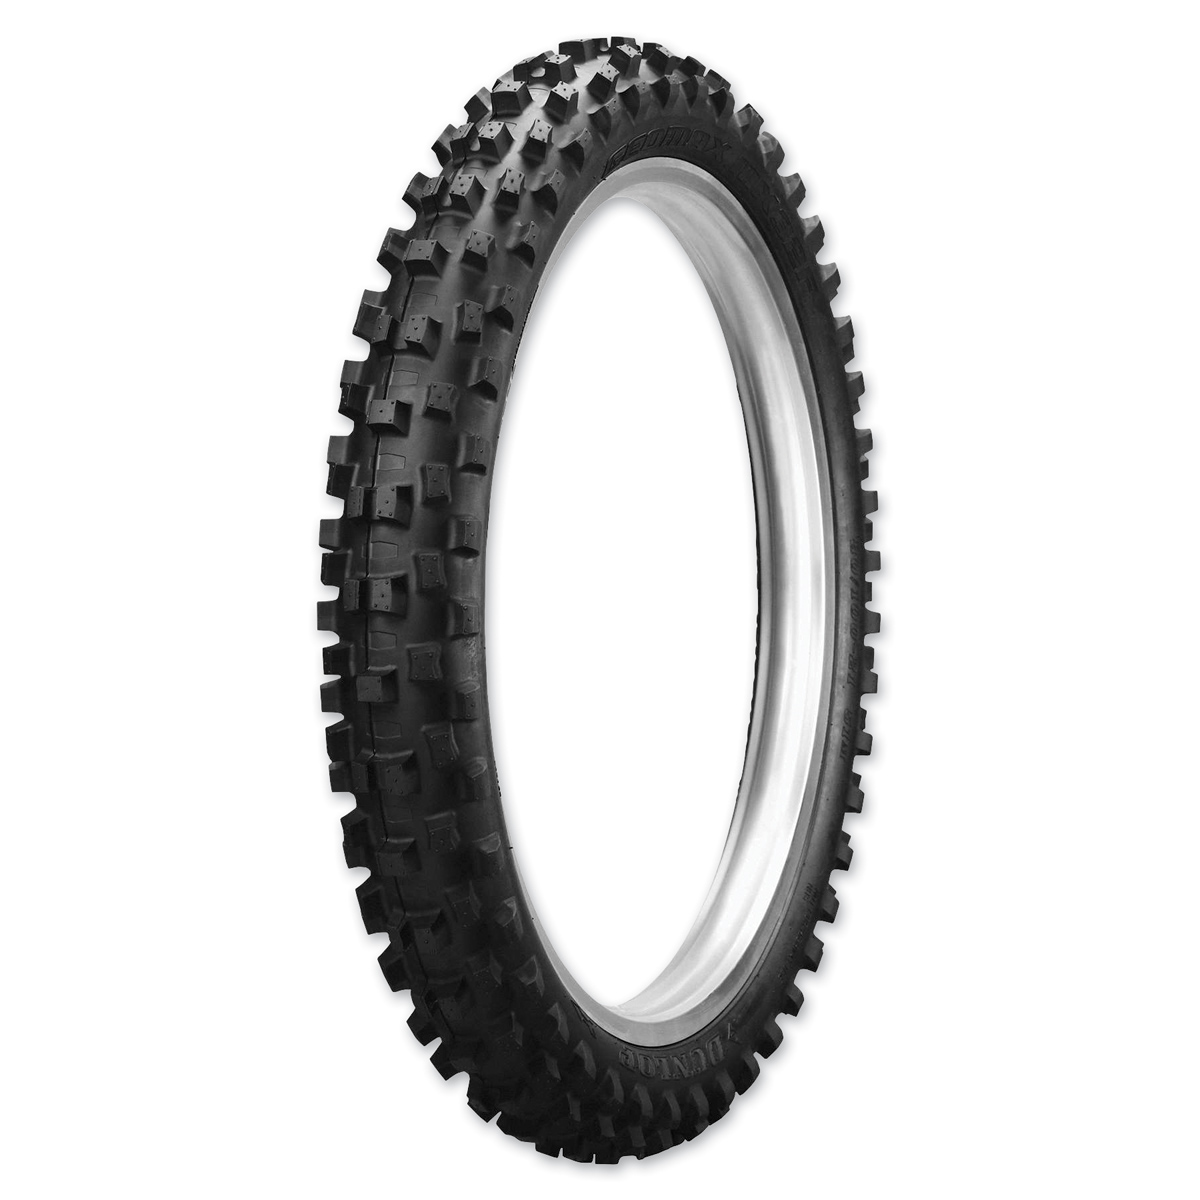 Dunlop MX3S/32 70/100-17 S/T-I/T Front Tire